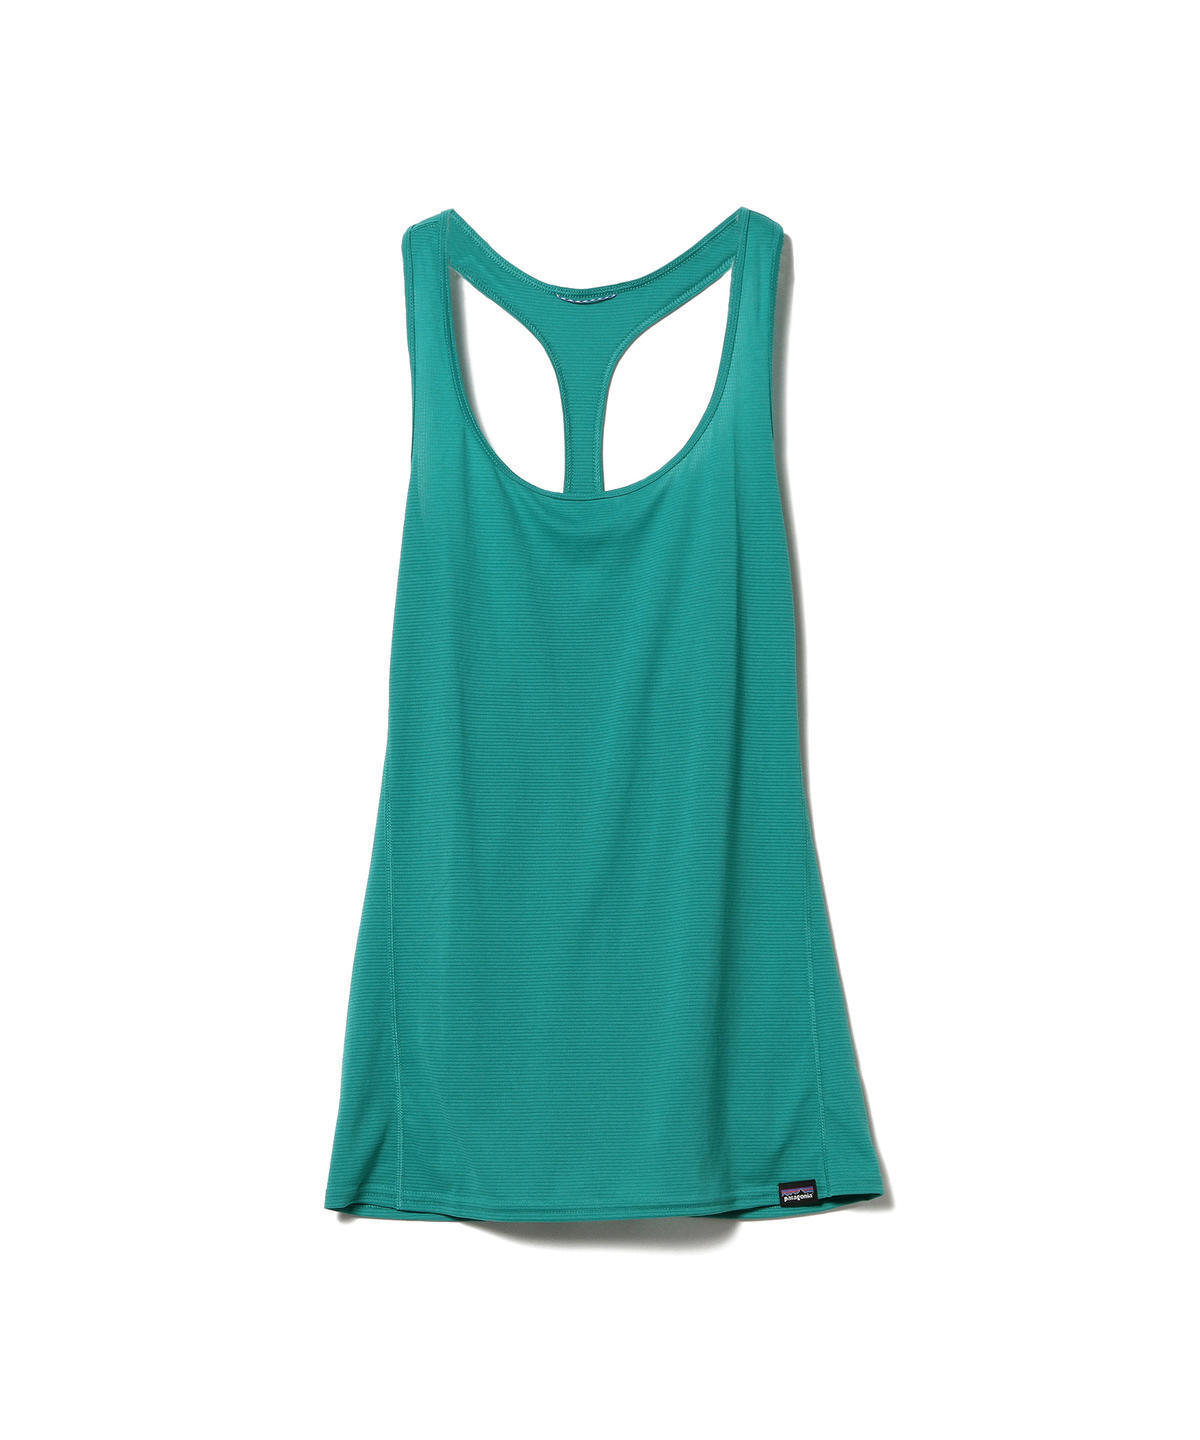 Capreen Light Tanktop